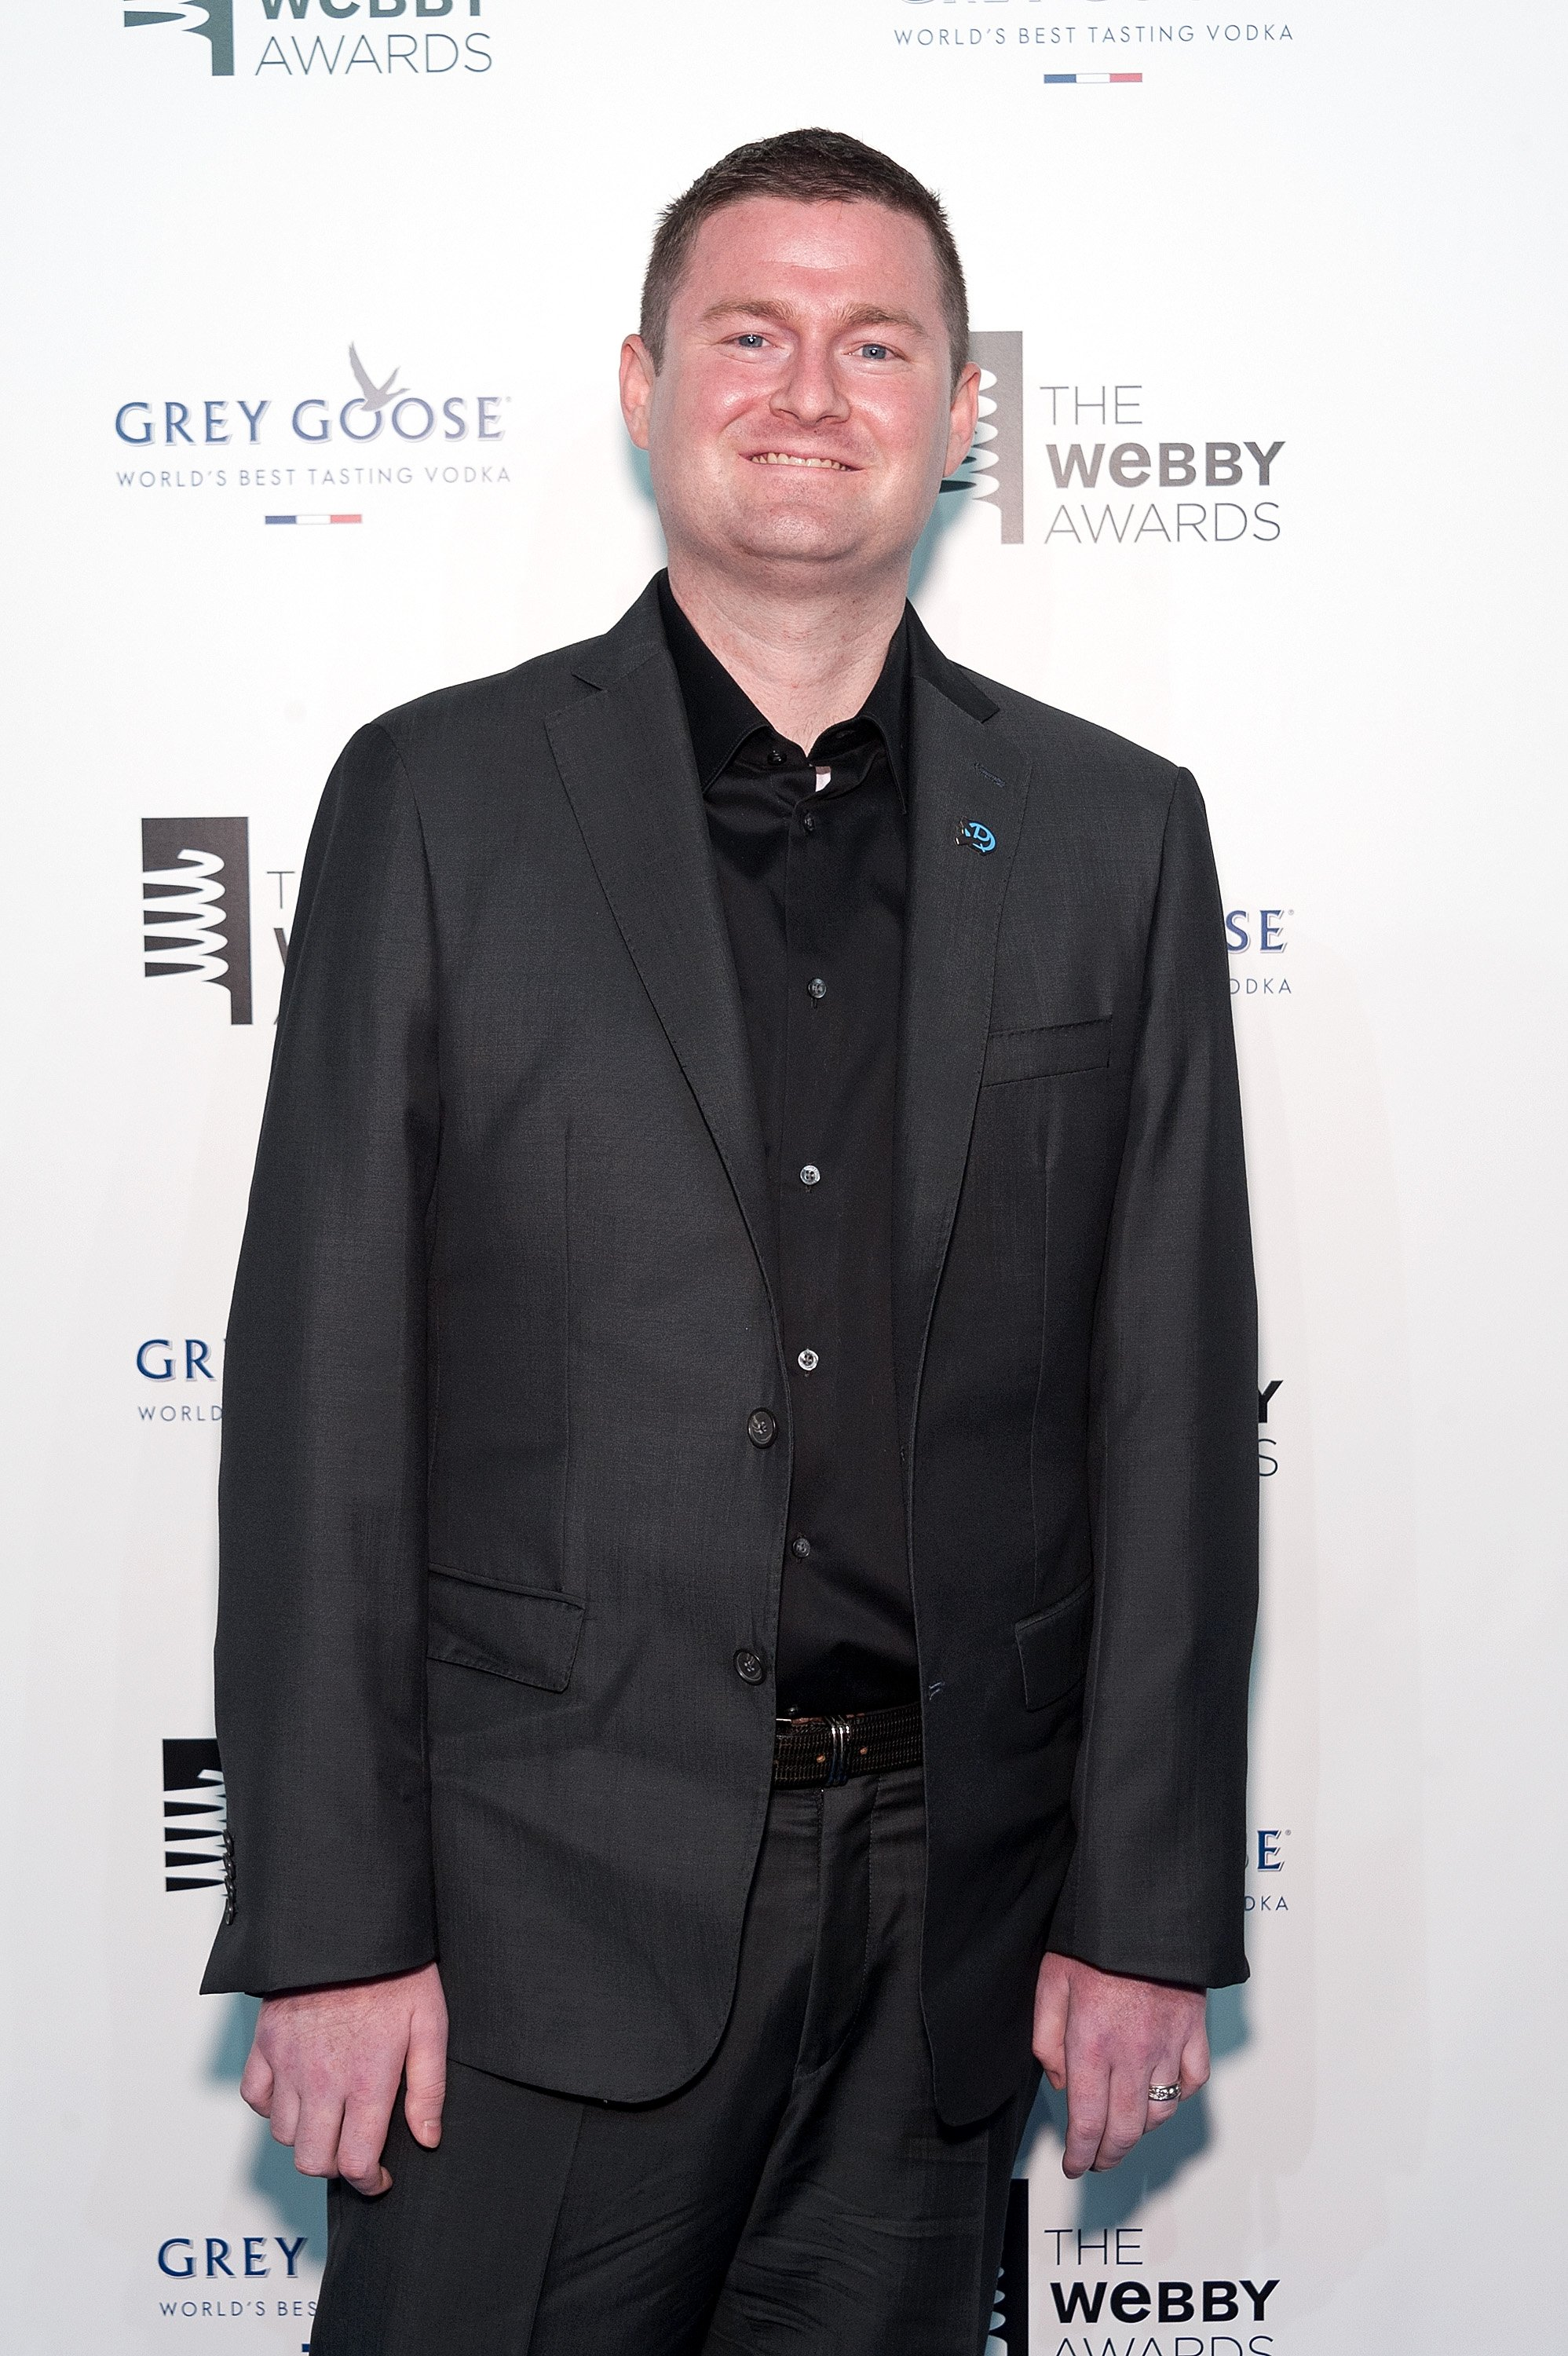 Patrick Quinn attends the 19th Annual Webby Awards on May 18, 2015, in New York City. | Source: Getty Images.